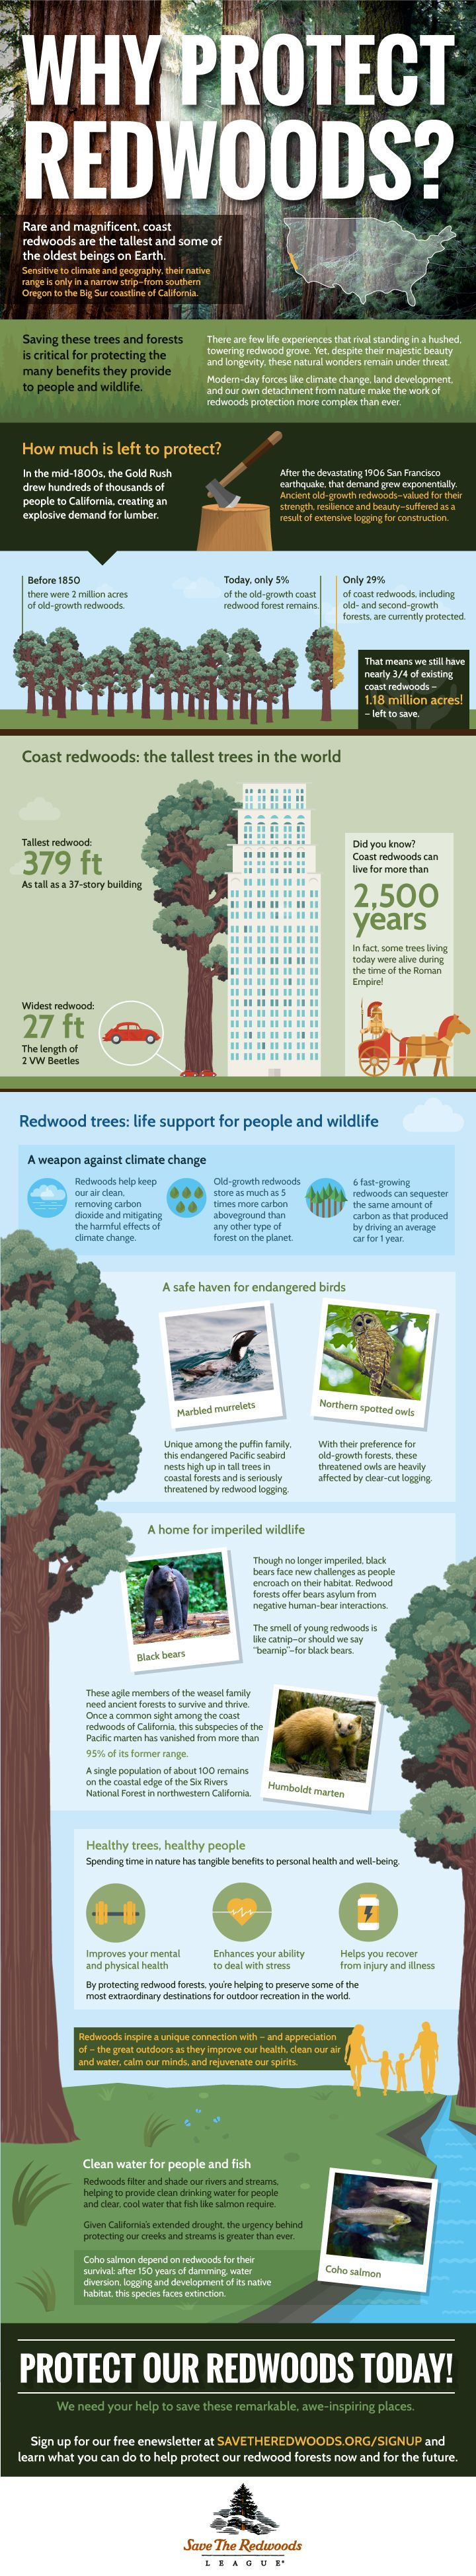 Happy Earth Day! We've created a new sky-high redwoods infographic for you to enjoy & share! http://www.savetheredwoods.org/blog/celebrate-earth-day-new-infographic/#utm_sguid=116638,bb27c241-a93c-9b3c-9ff8-5cb40fb01d53